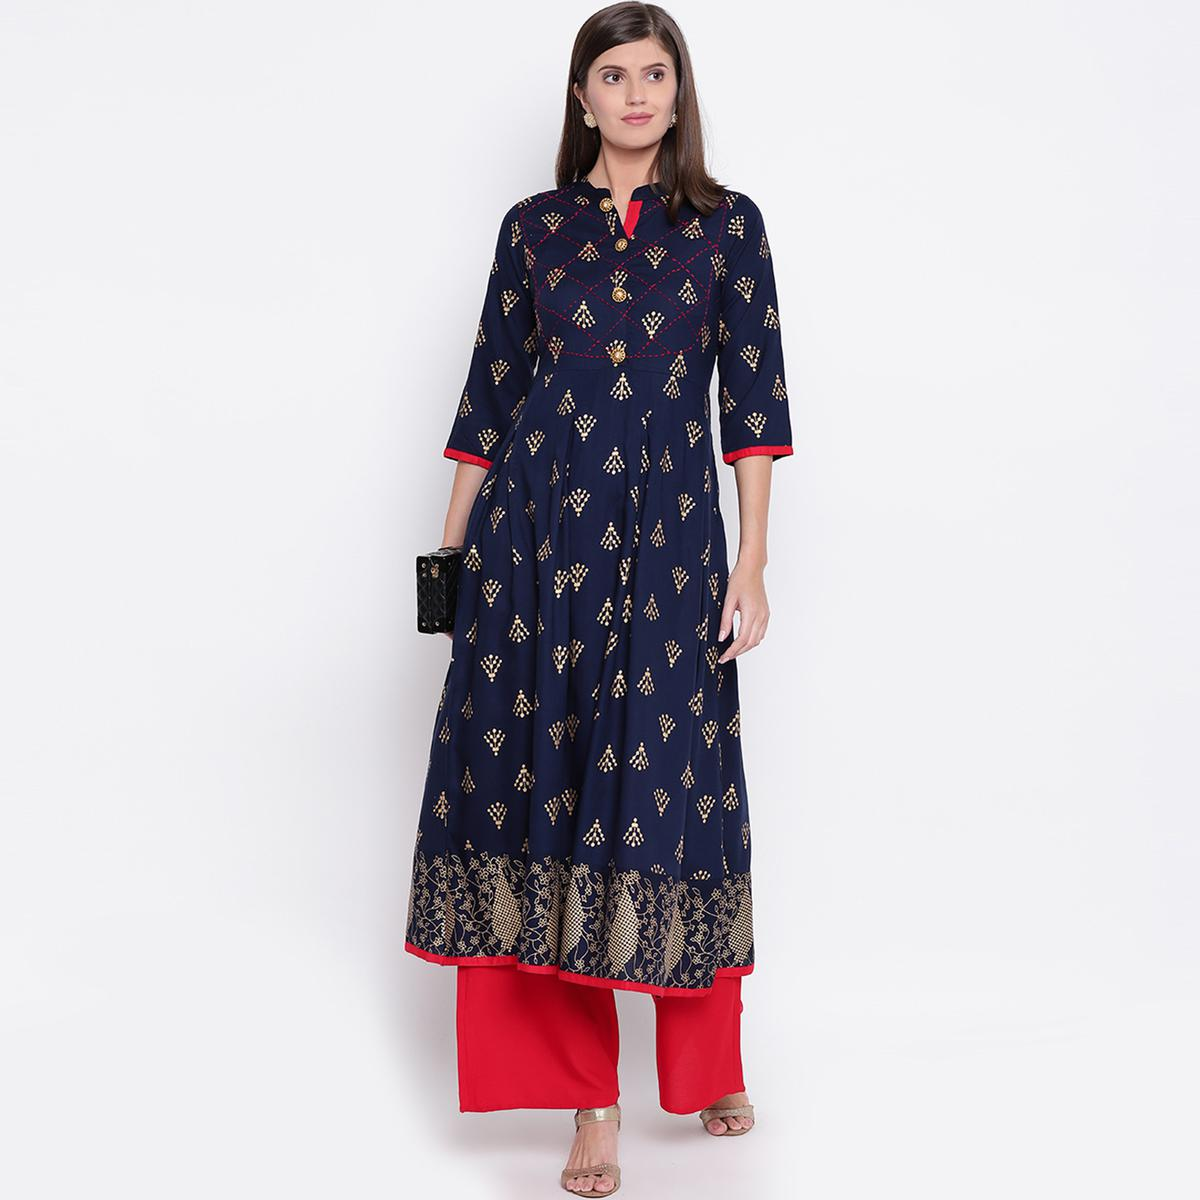 Radiant Navy Blue Colored Partywear Printed Rayon Kurti